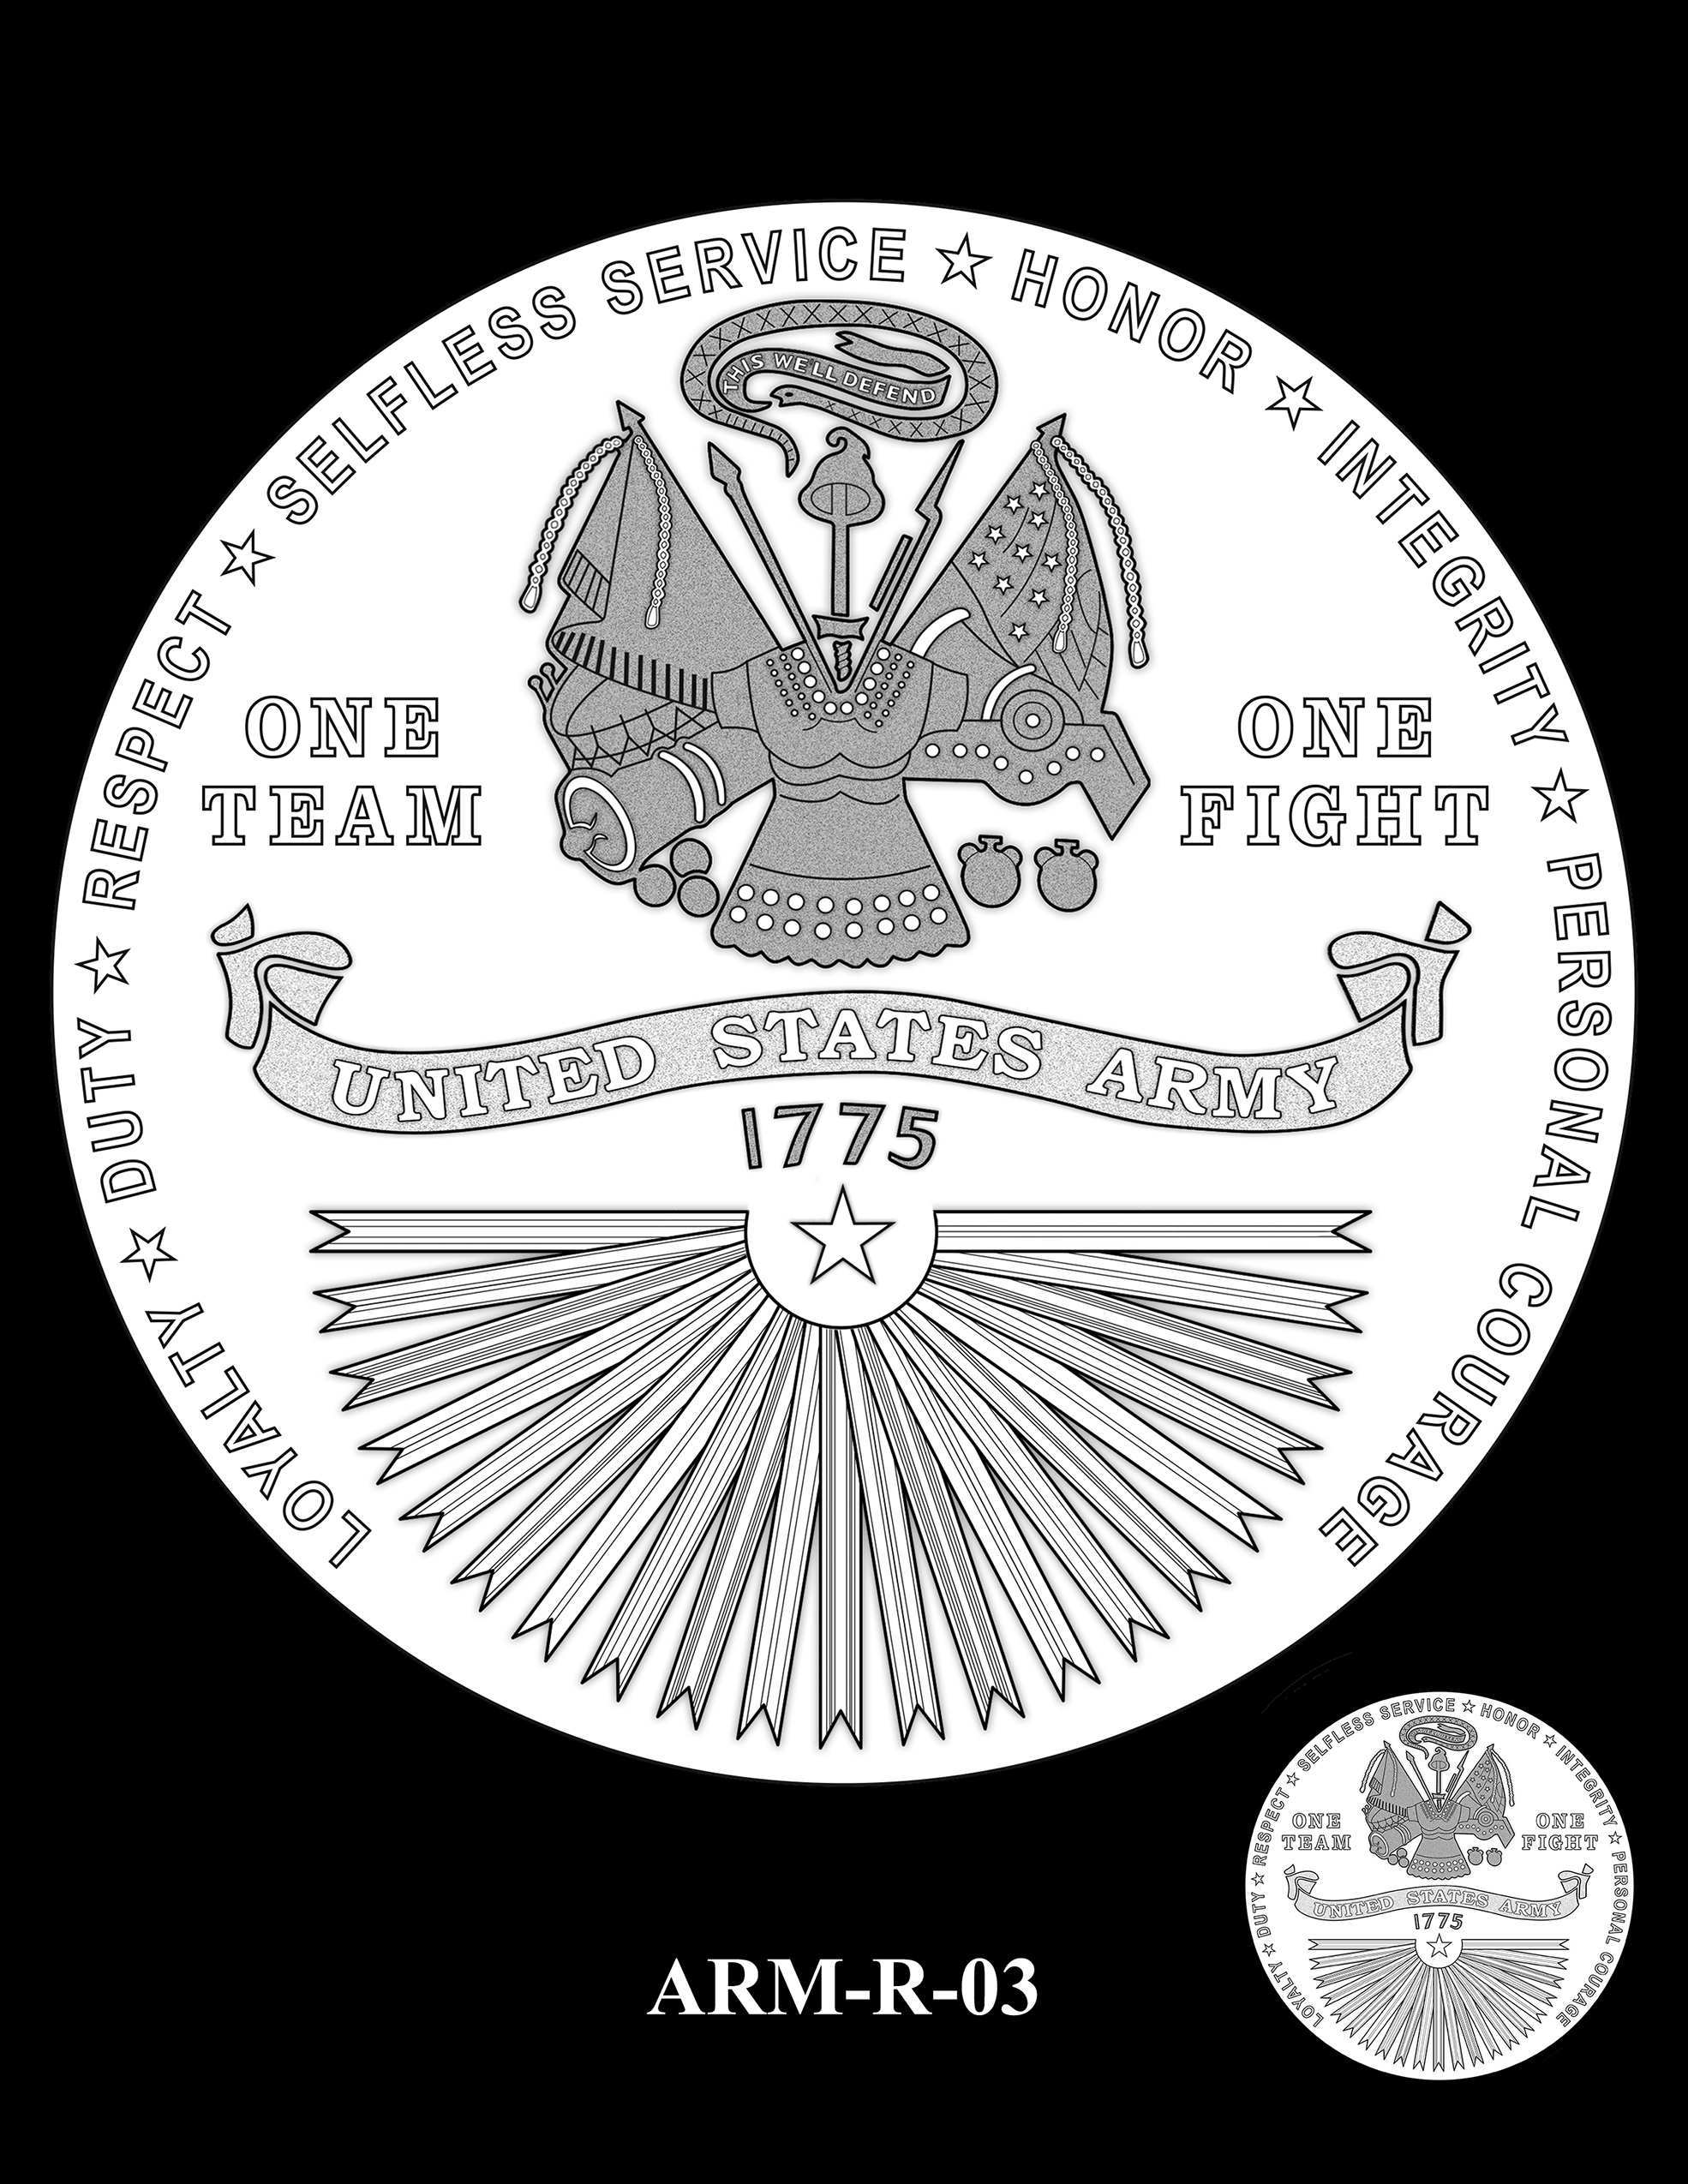 ARM-R-03 -- United States Army Silver Medal